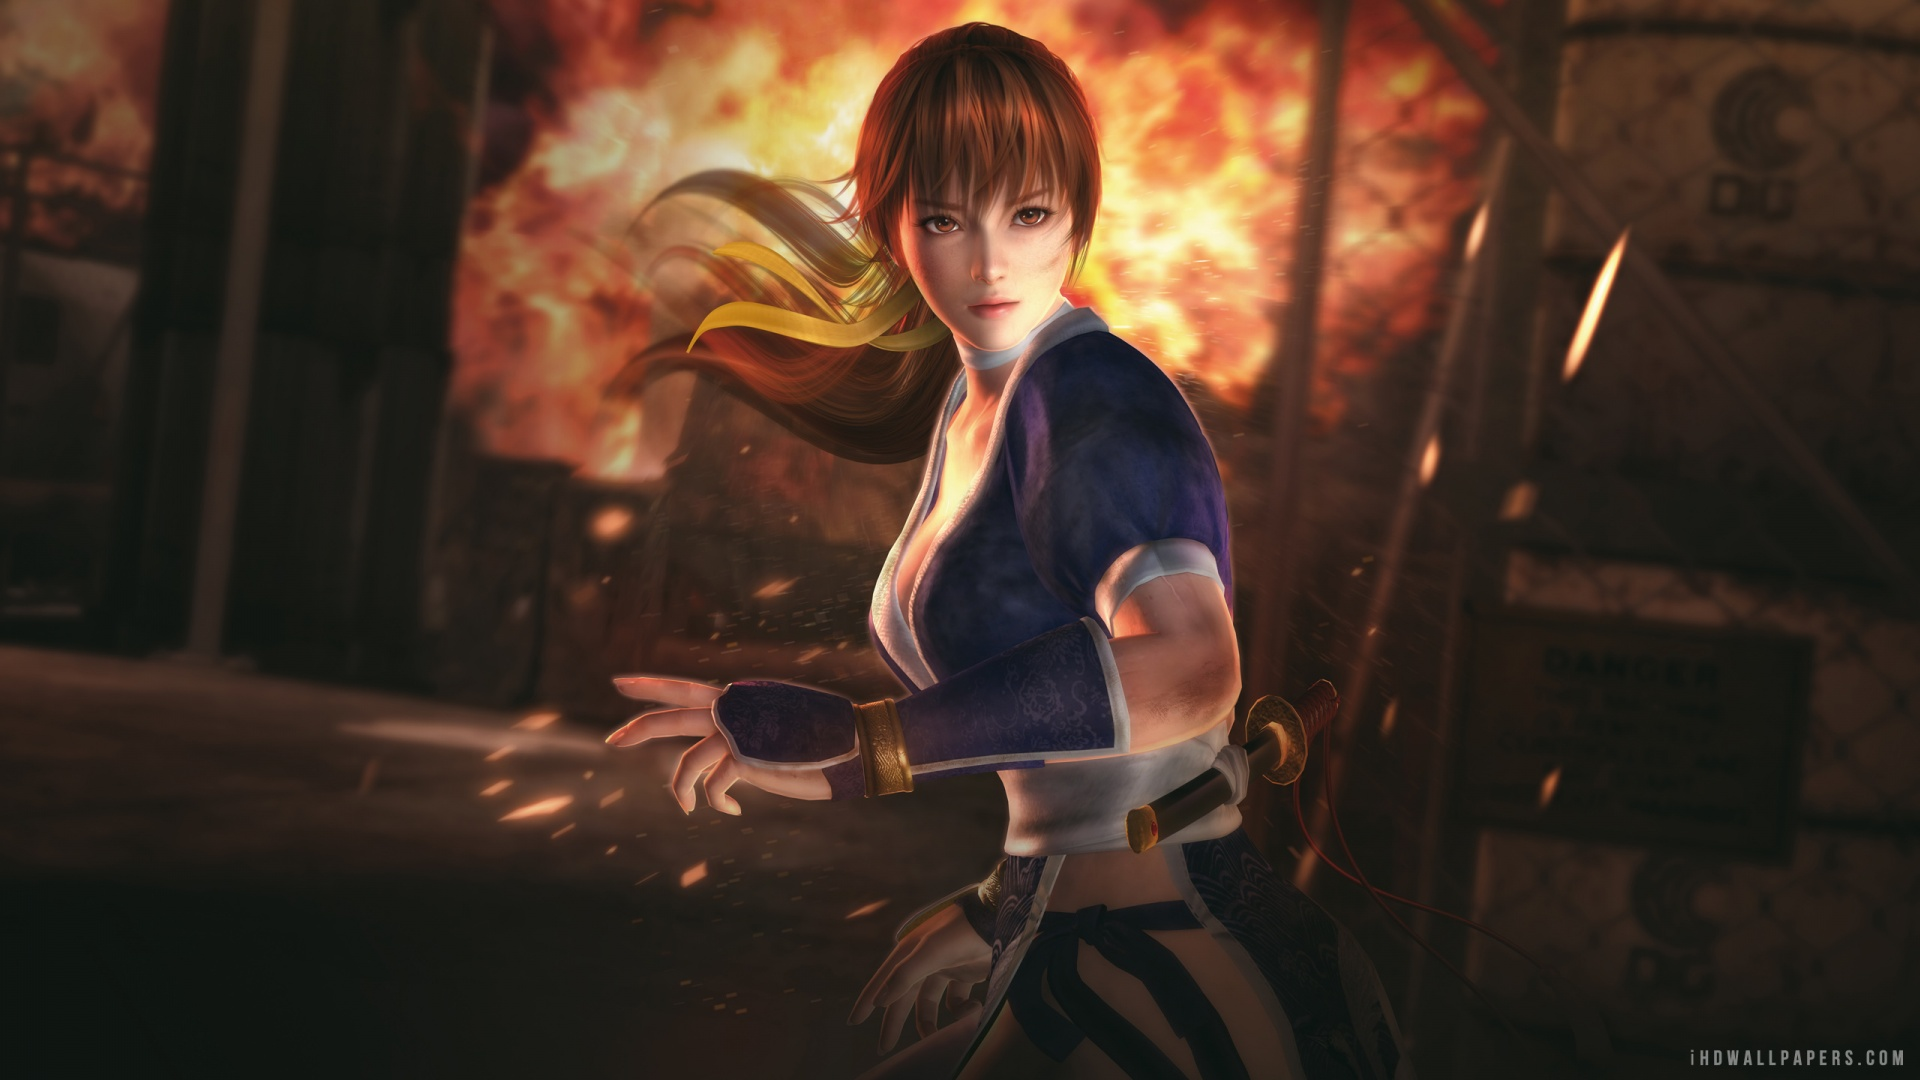 kasumi Dead or Alive 5 HD Wallpaper   iHD Wallpapers 1920x1080